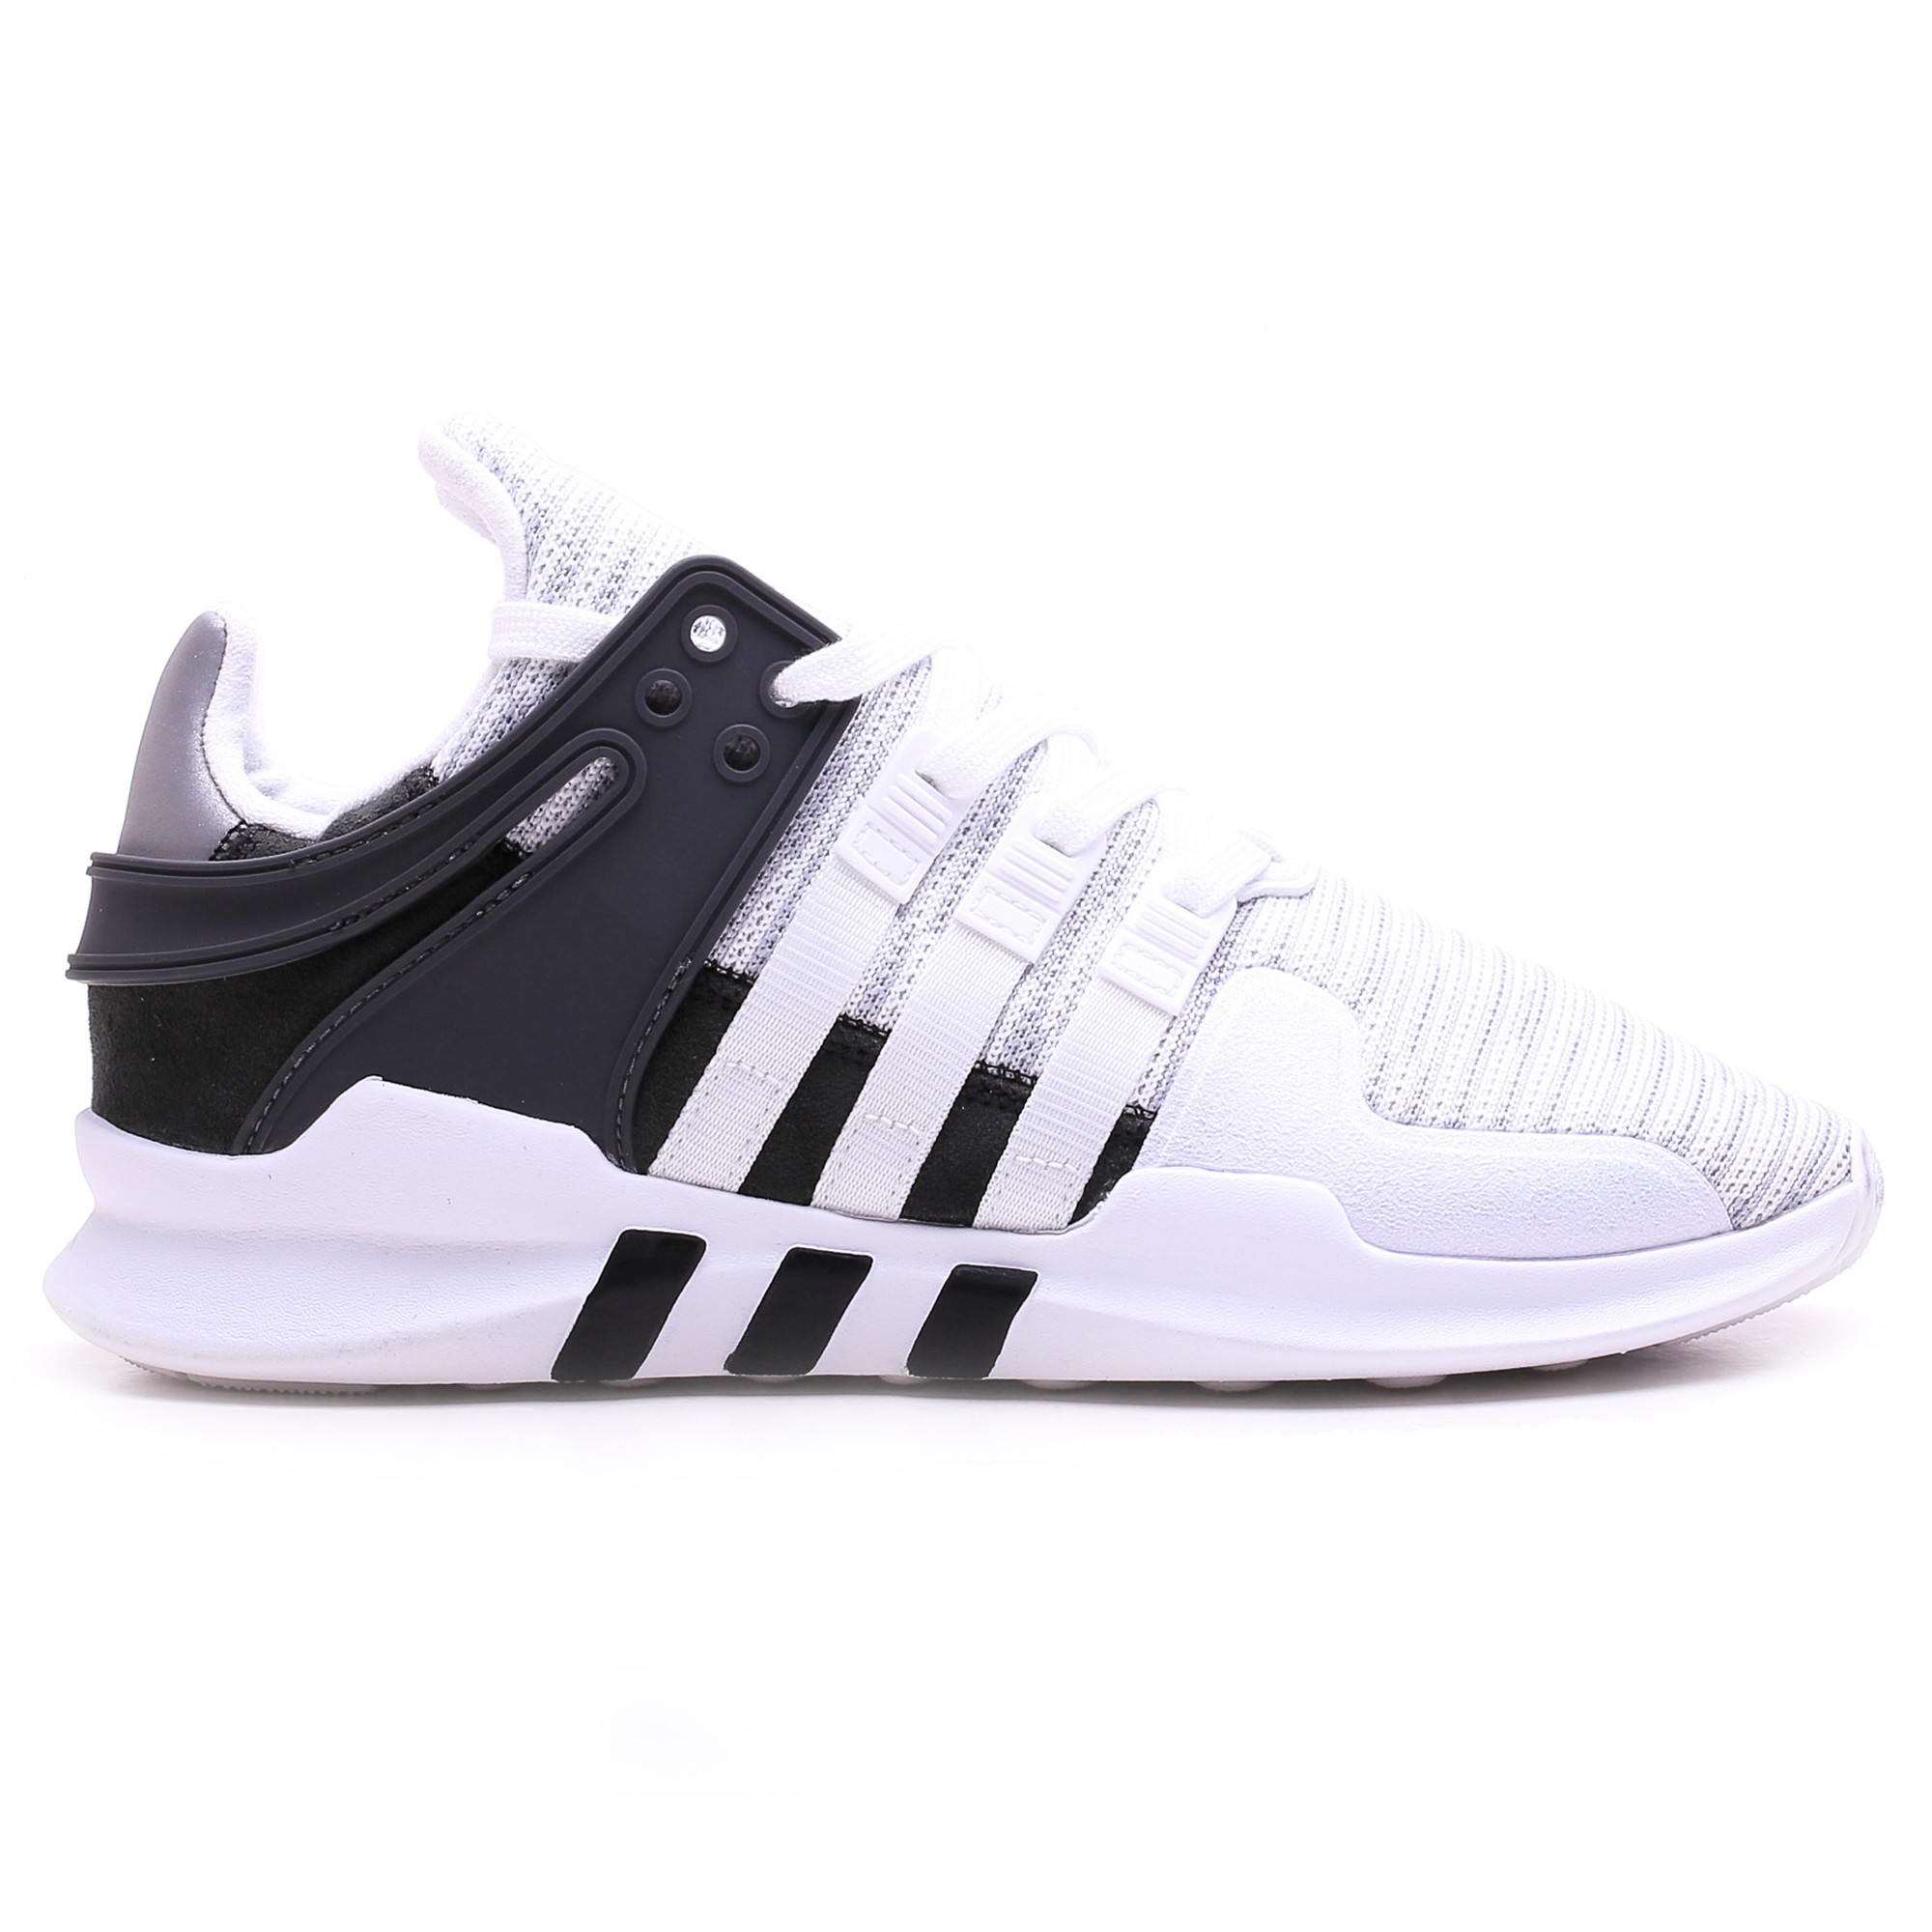 EQT SUPPORT ULTRA Shoes adidas US